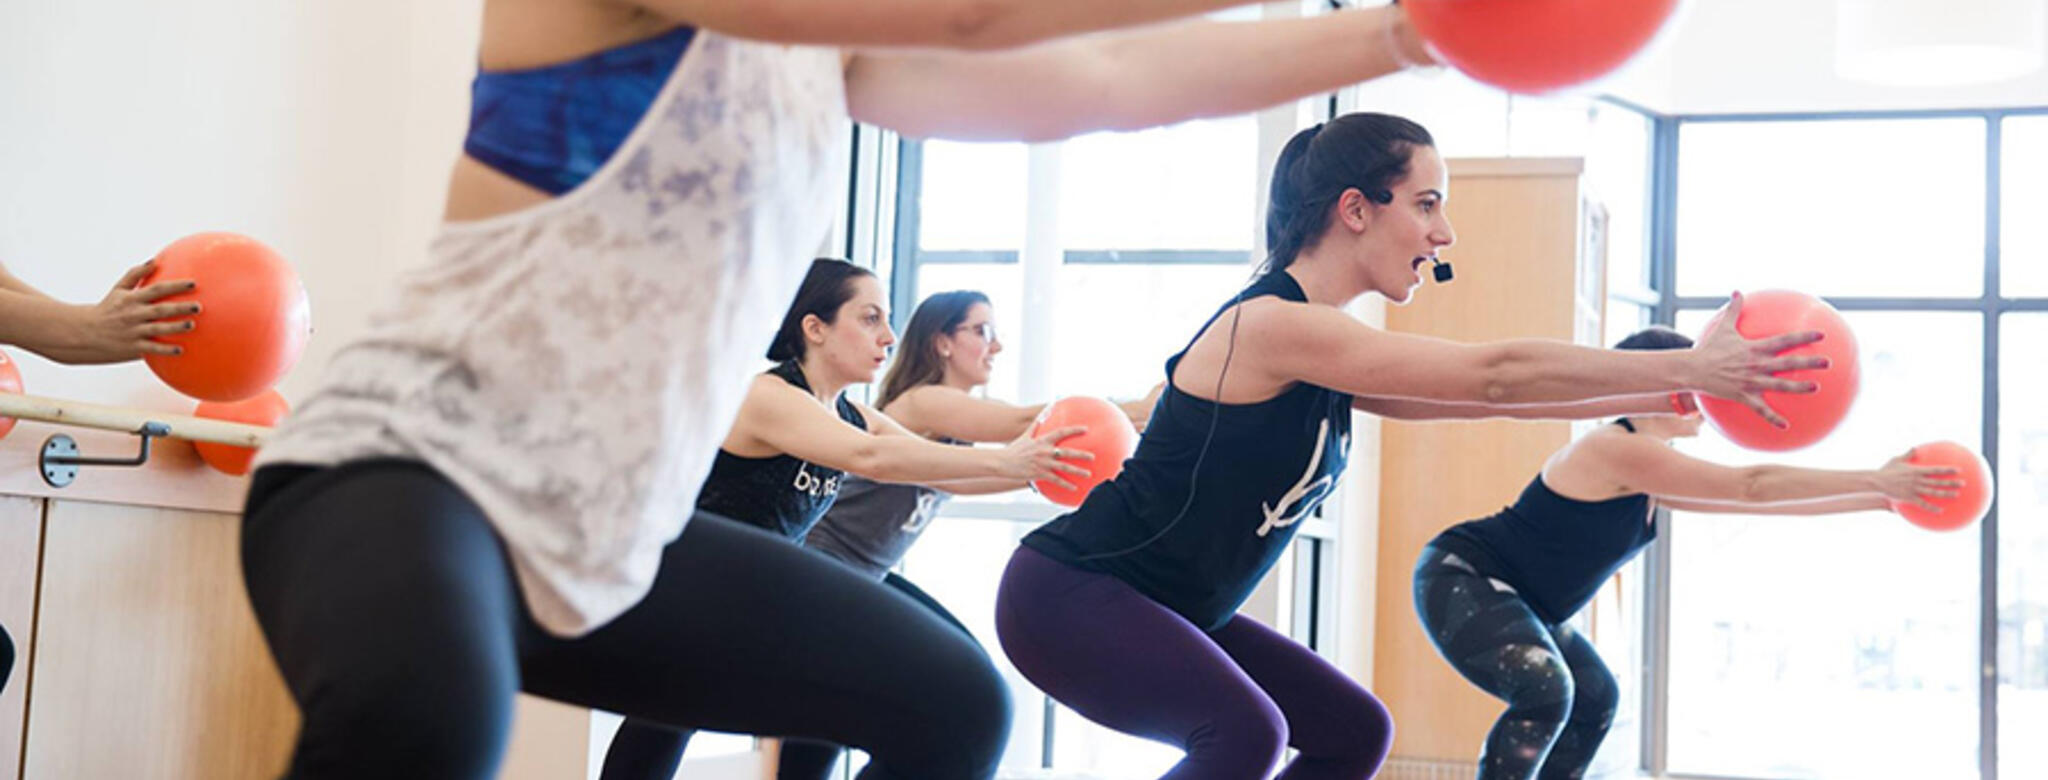 Class at Barre3 Brookline